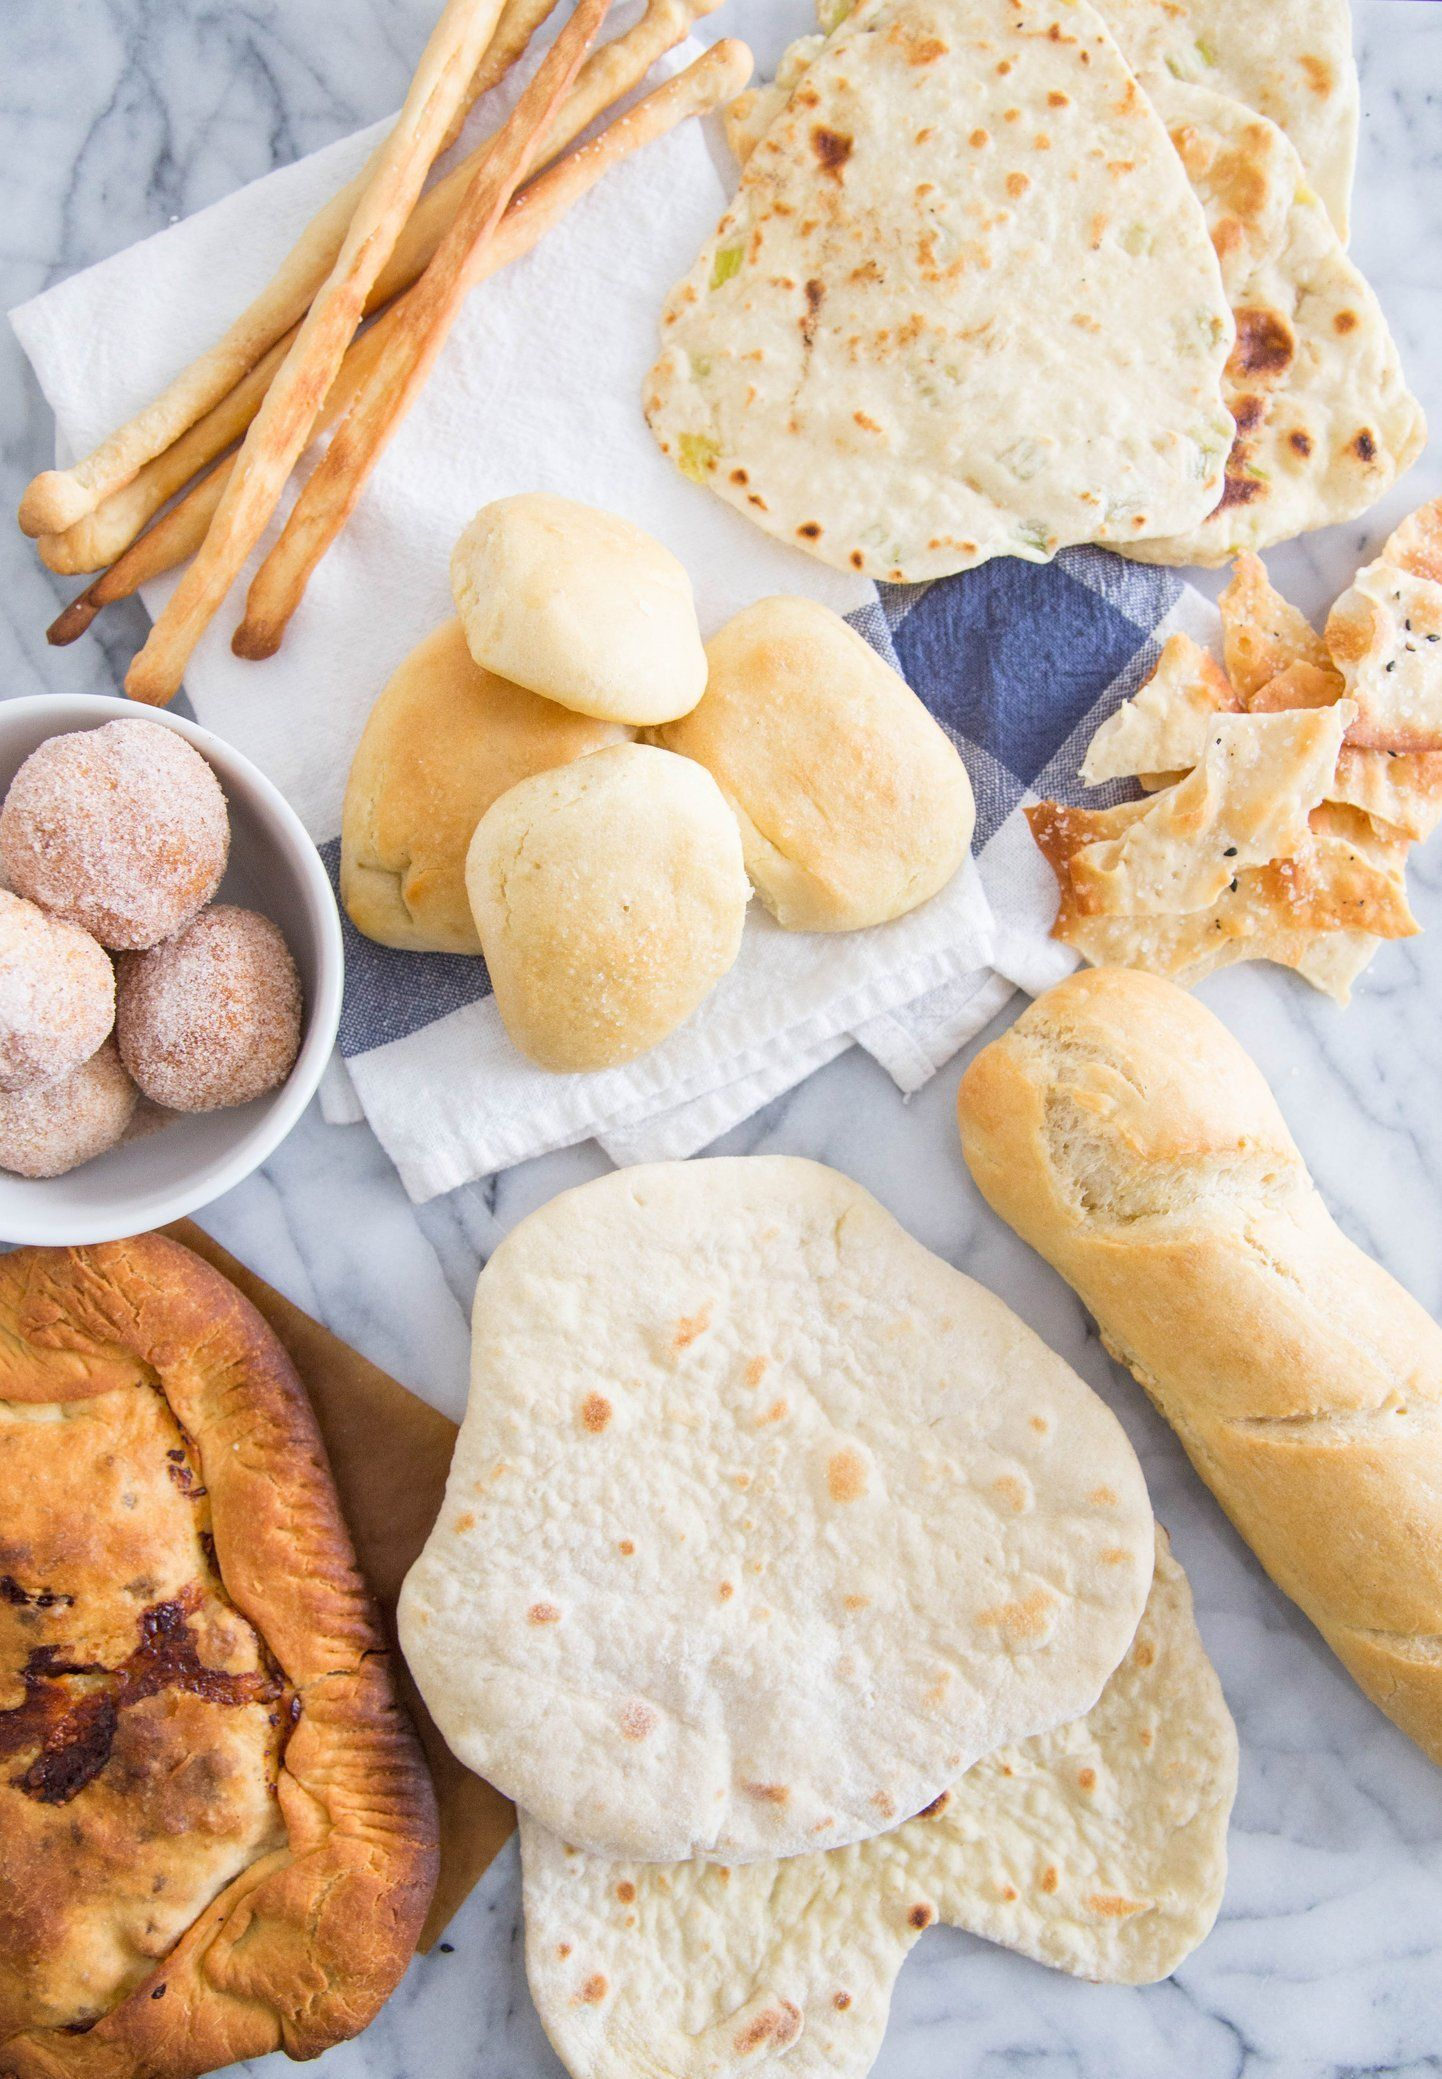 8 Glorious Ways to Use Pizza Dough (Besides Making Pizza!)